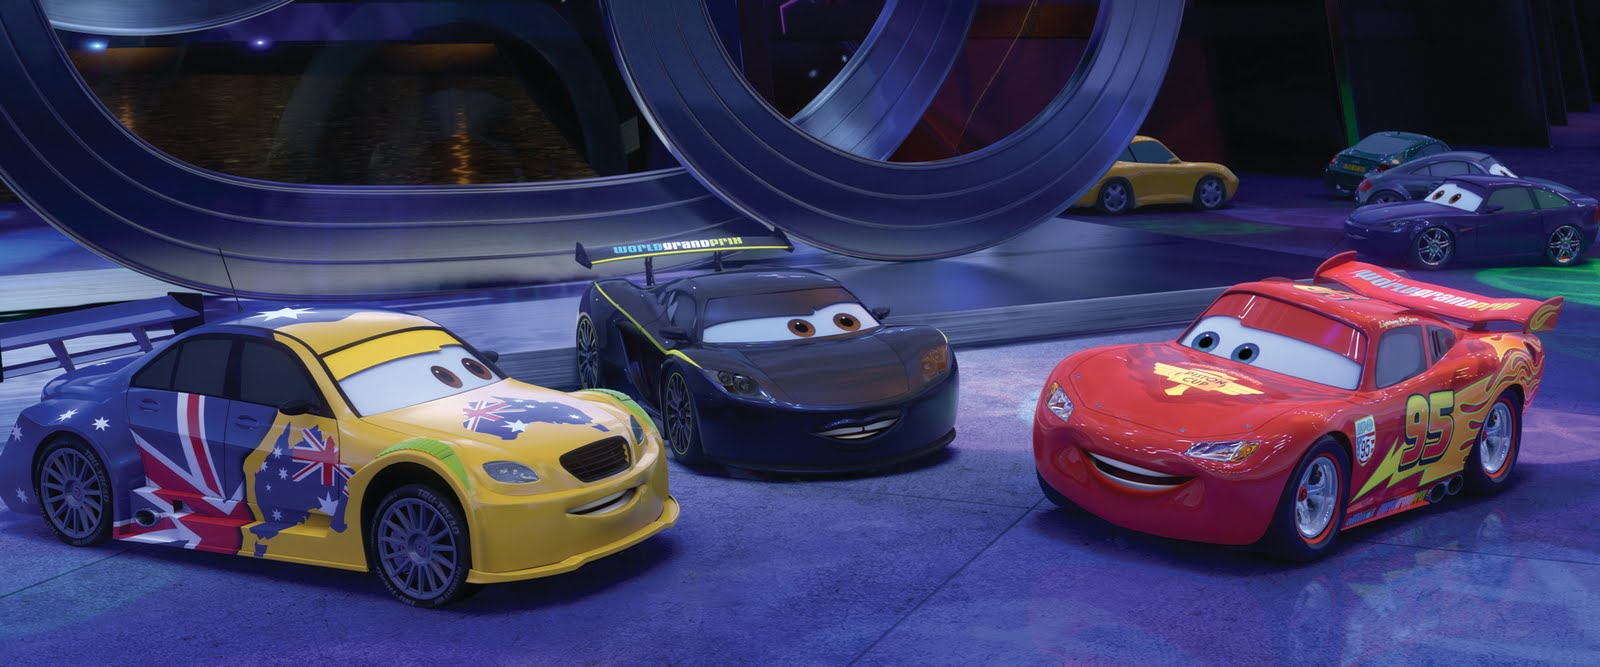 frosty pixar wiki fandom powered by wikia - Cars The Movie 2 Characters